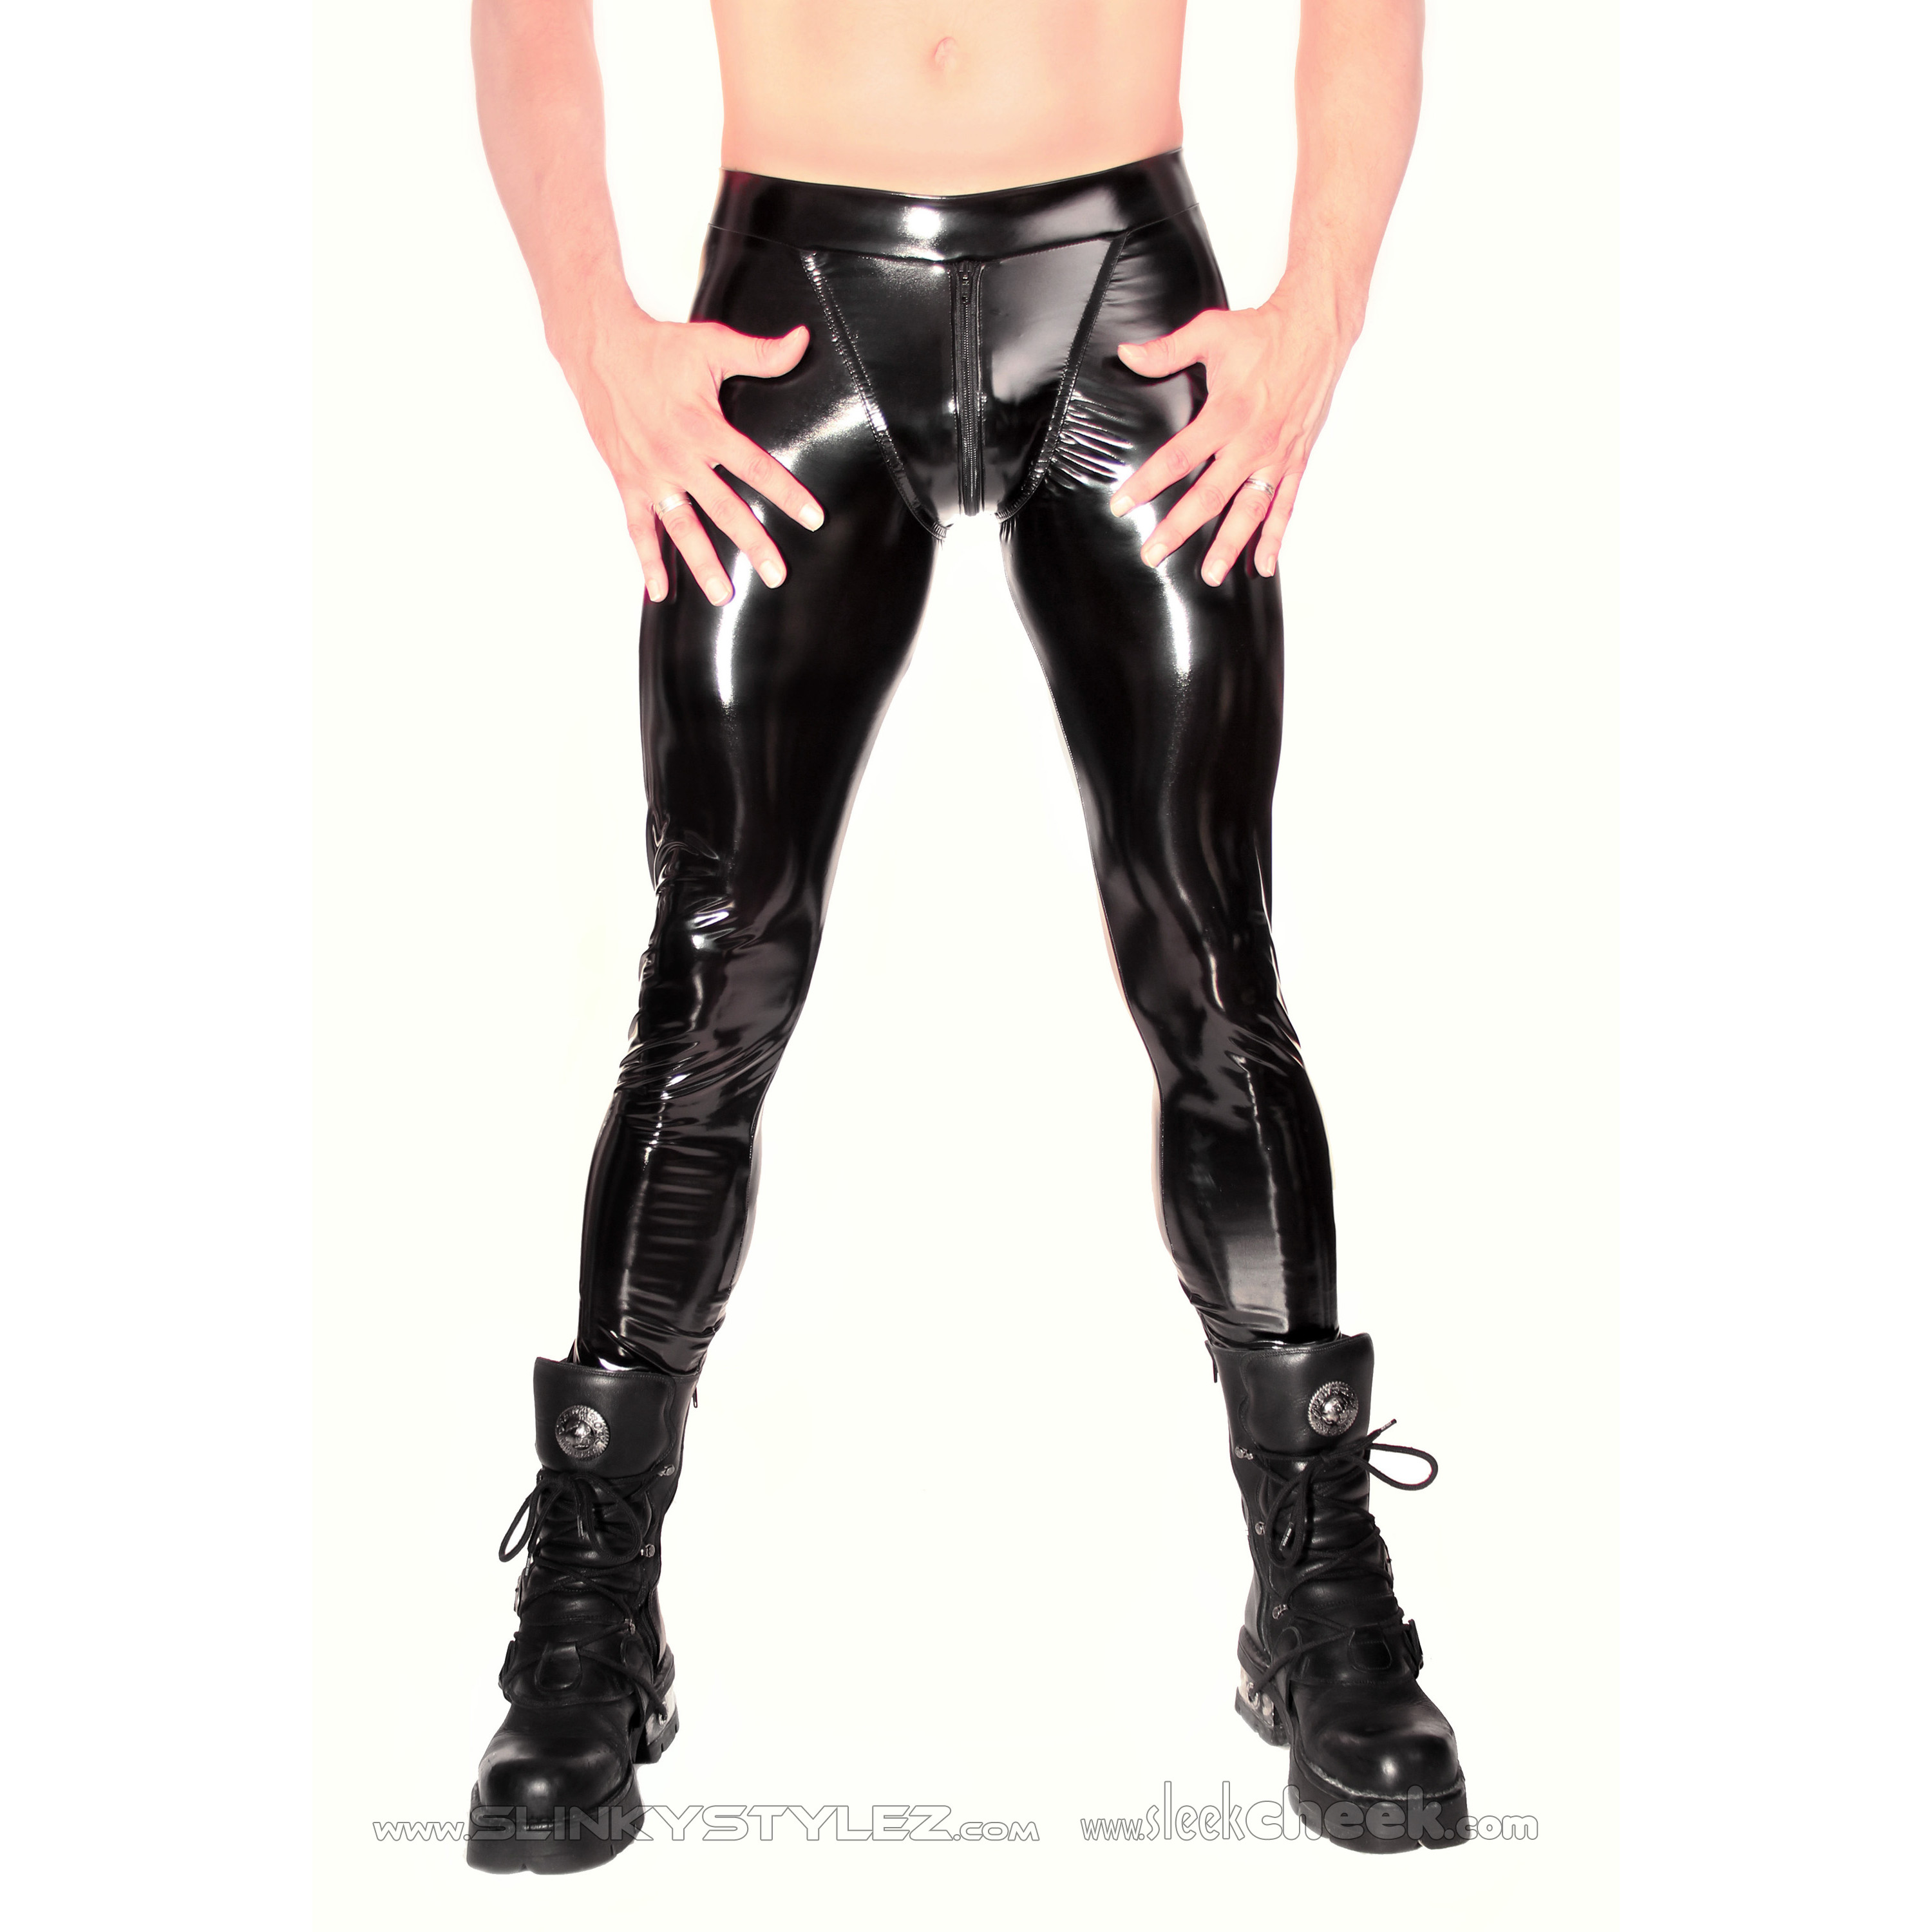 SLINKYSTYLEZ Anatomic Leggings HL3AP - CrystalLac Z360 - CUSTOM (L32H)